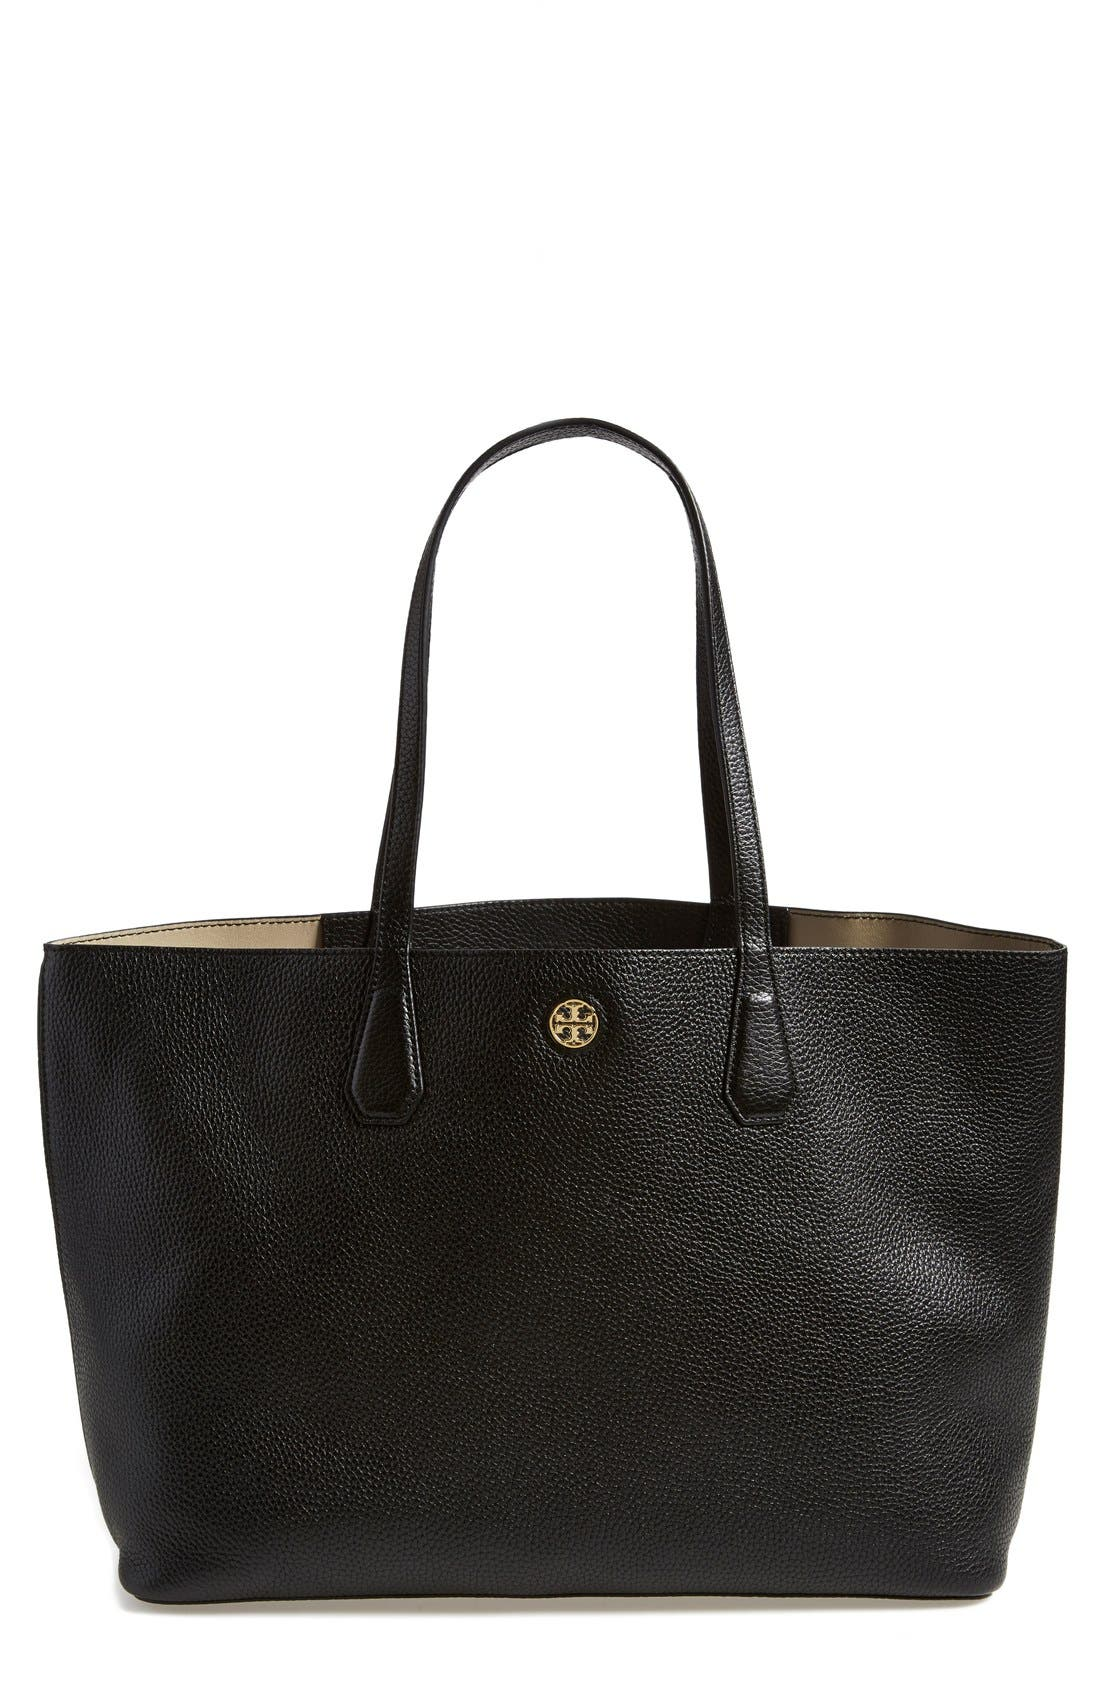 Main Image - Tory Burch 'Perry' Leather Tote